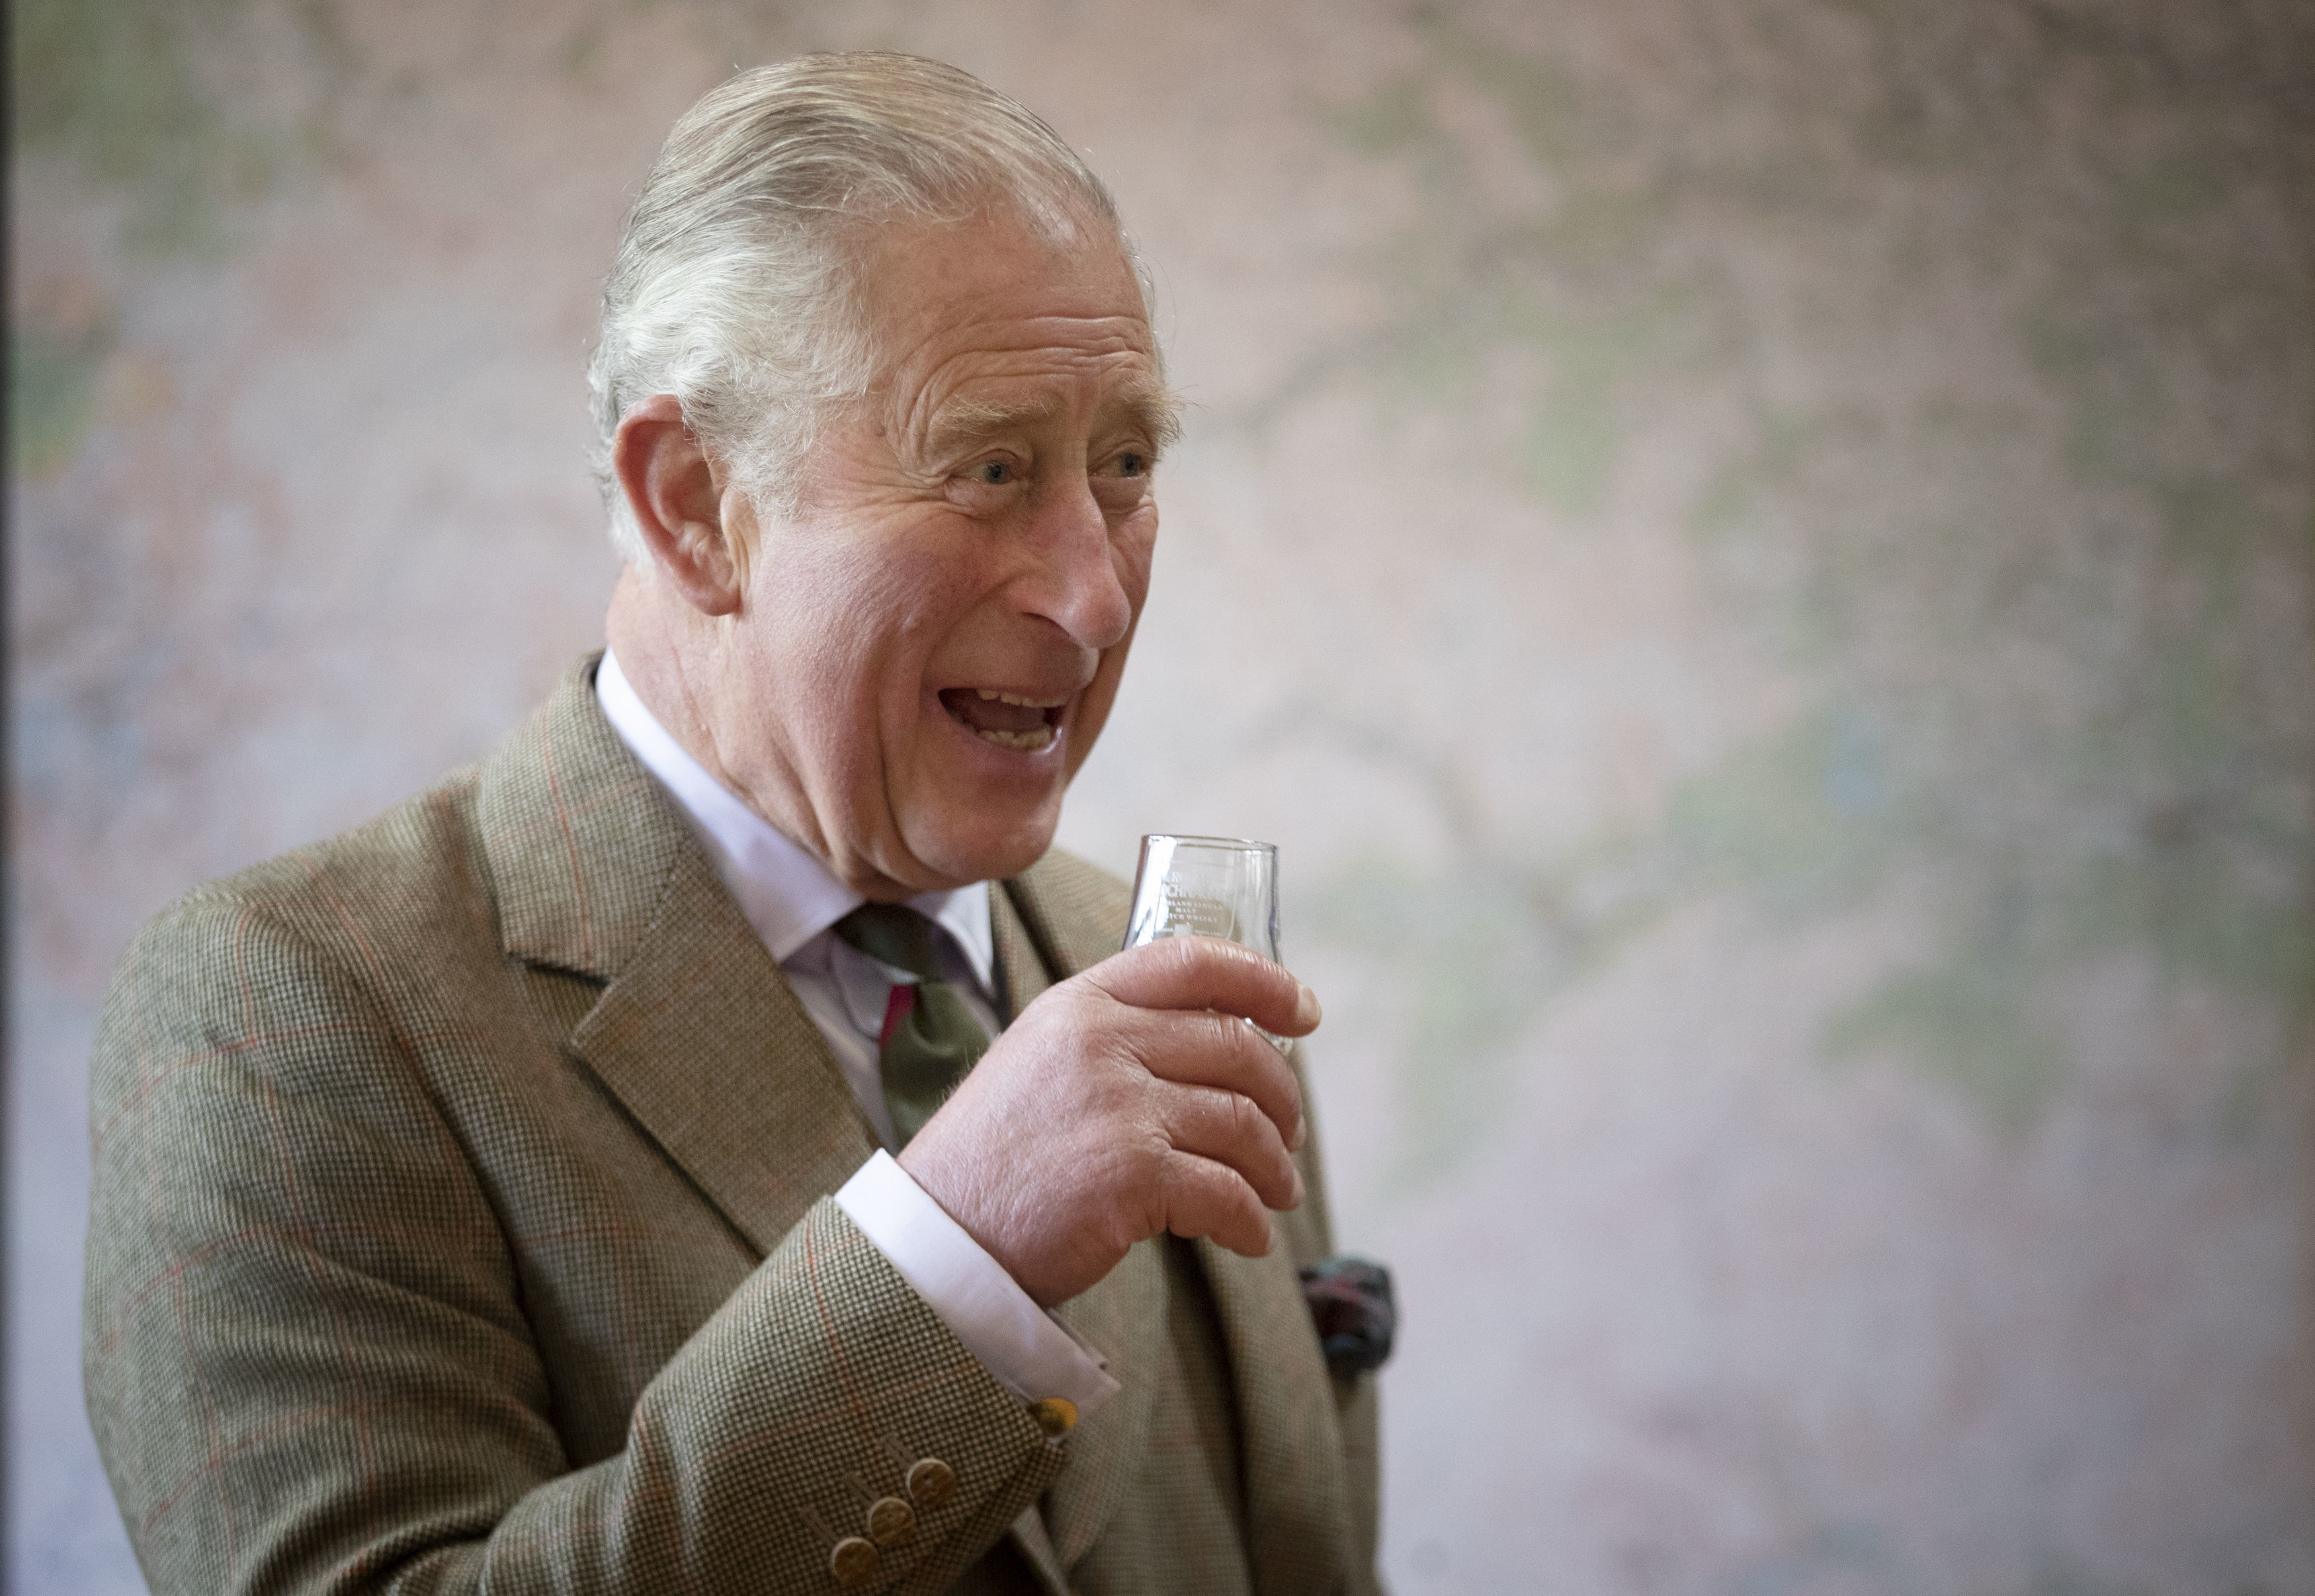 The Prince of Wales, known as the Duke of Rothesay while in Scotland, takes part in a whisky tasting during a visit to the Royal Lochnagar Distillery at Crathie.